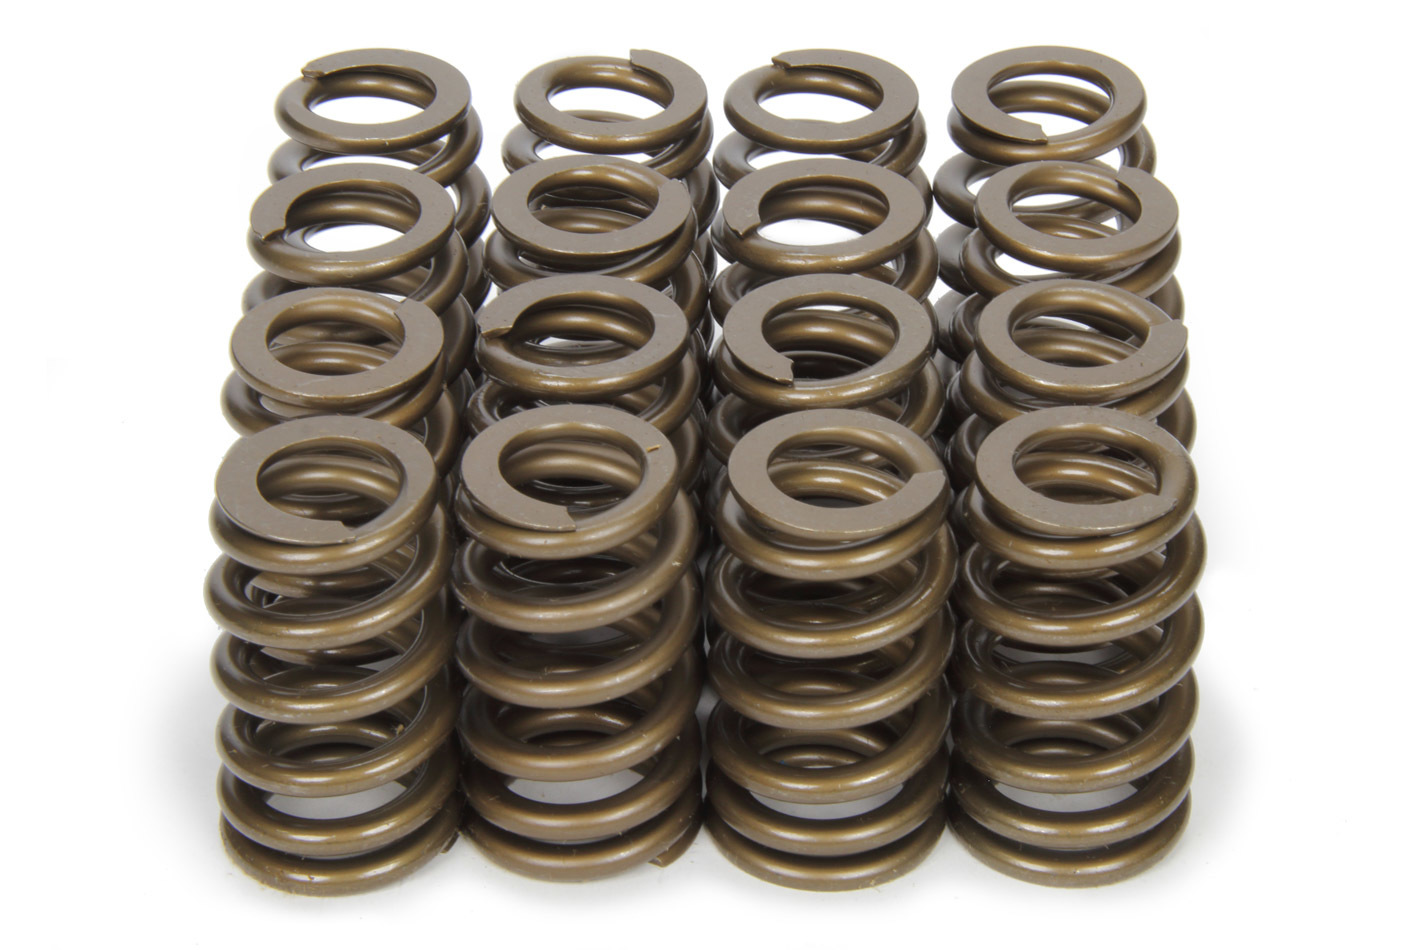 PAC Racing Springs PAC-1283 Valve Spring, 1200 Series, Ovate Beehive Spring, 363 lb/in Spring Rate, 1.180 in Coil Bind, 1.282 in OD, Set of 16